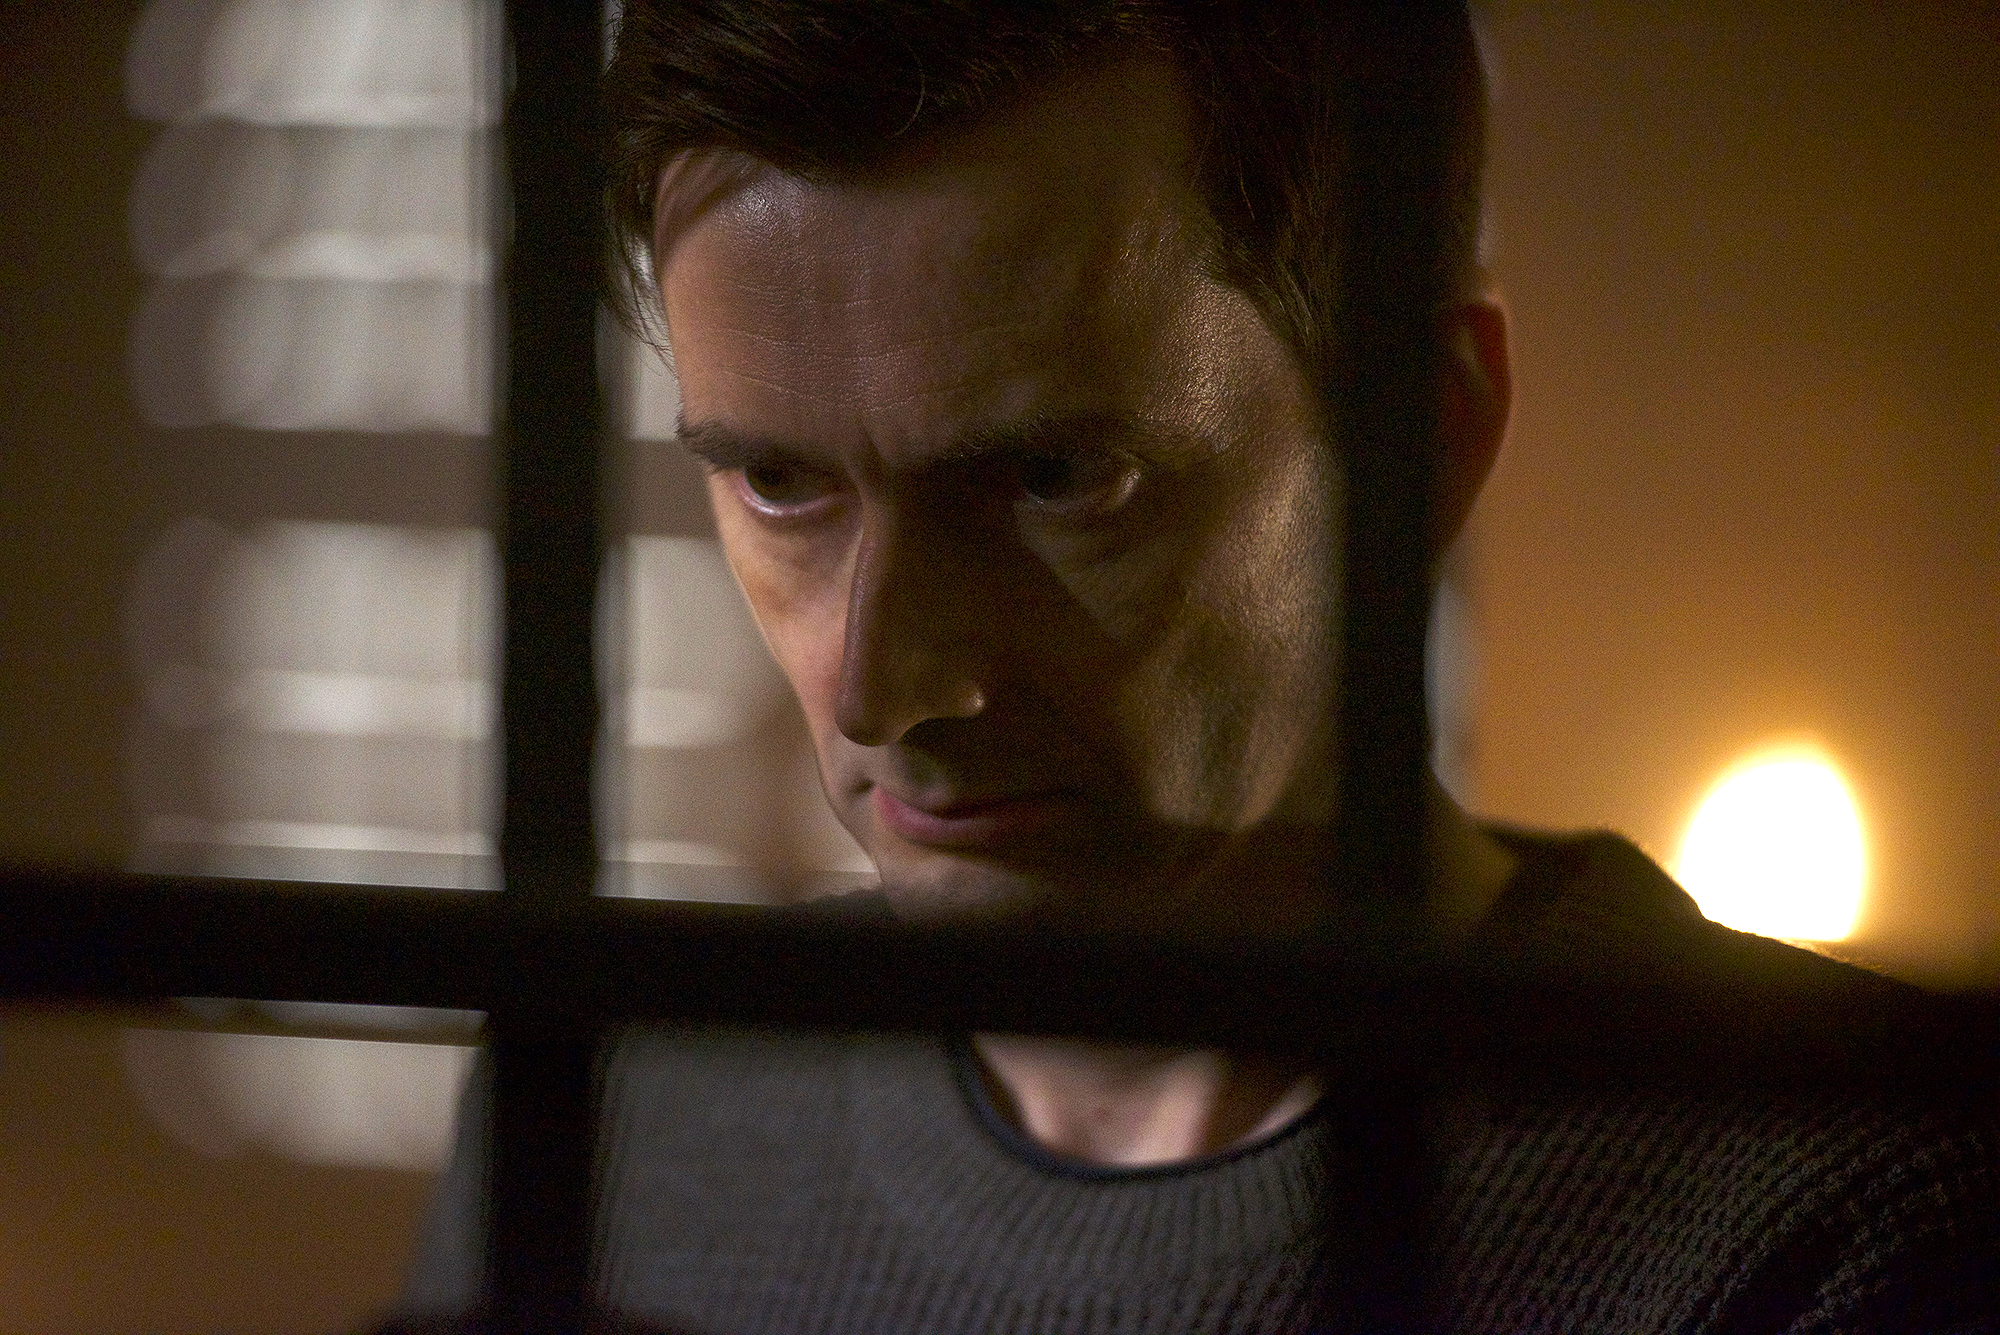 David-Tennant-Bad-Samaritan